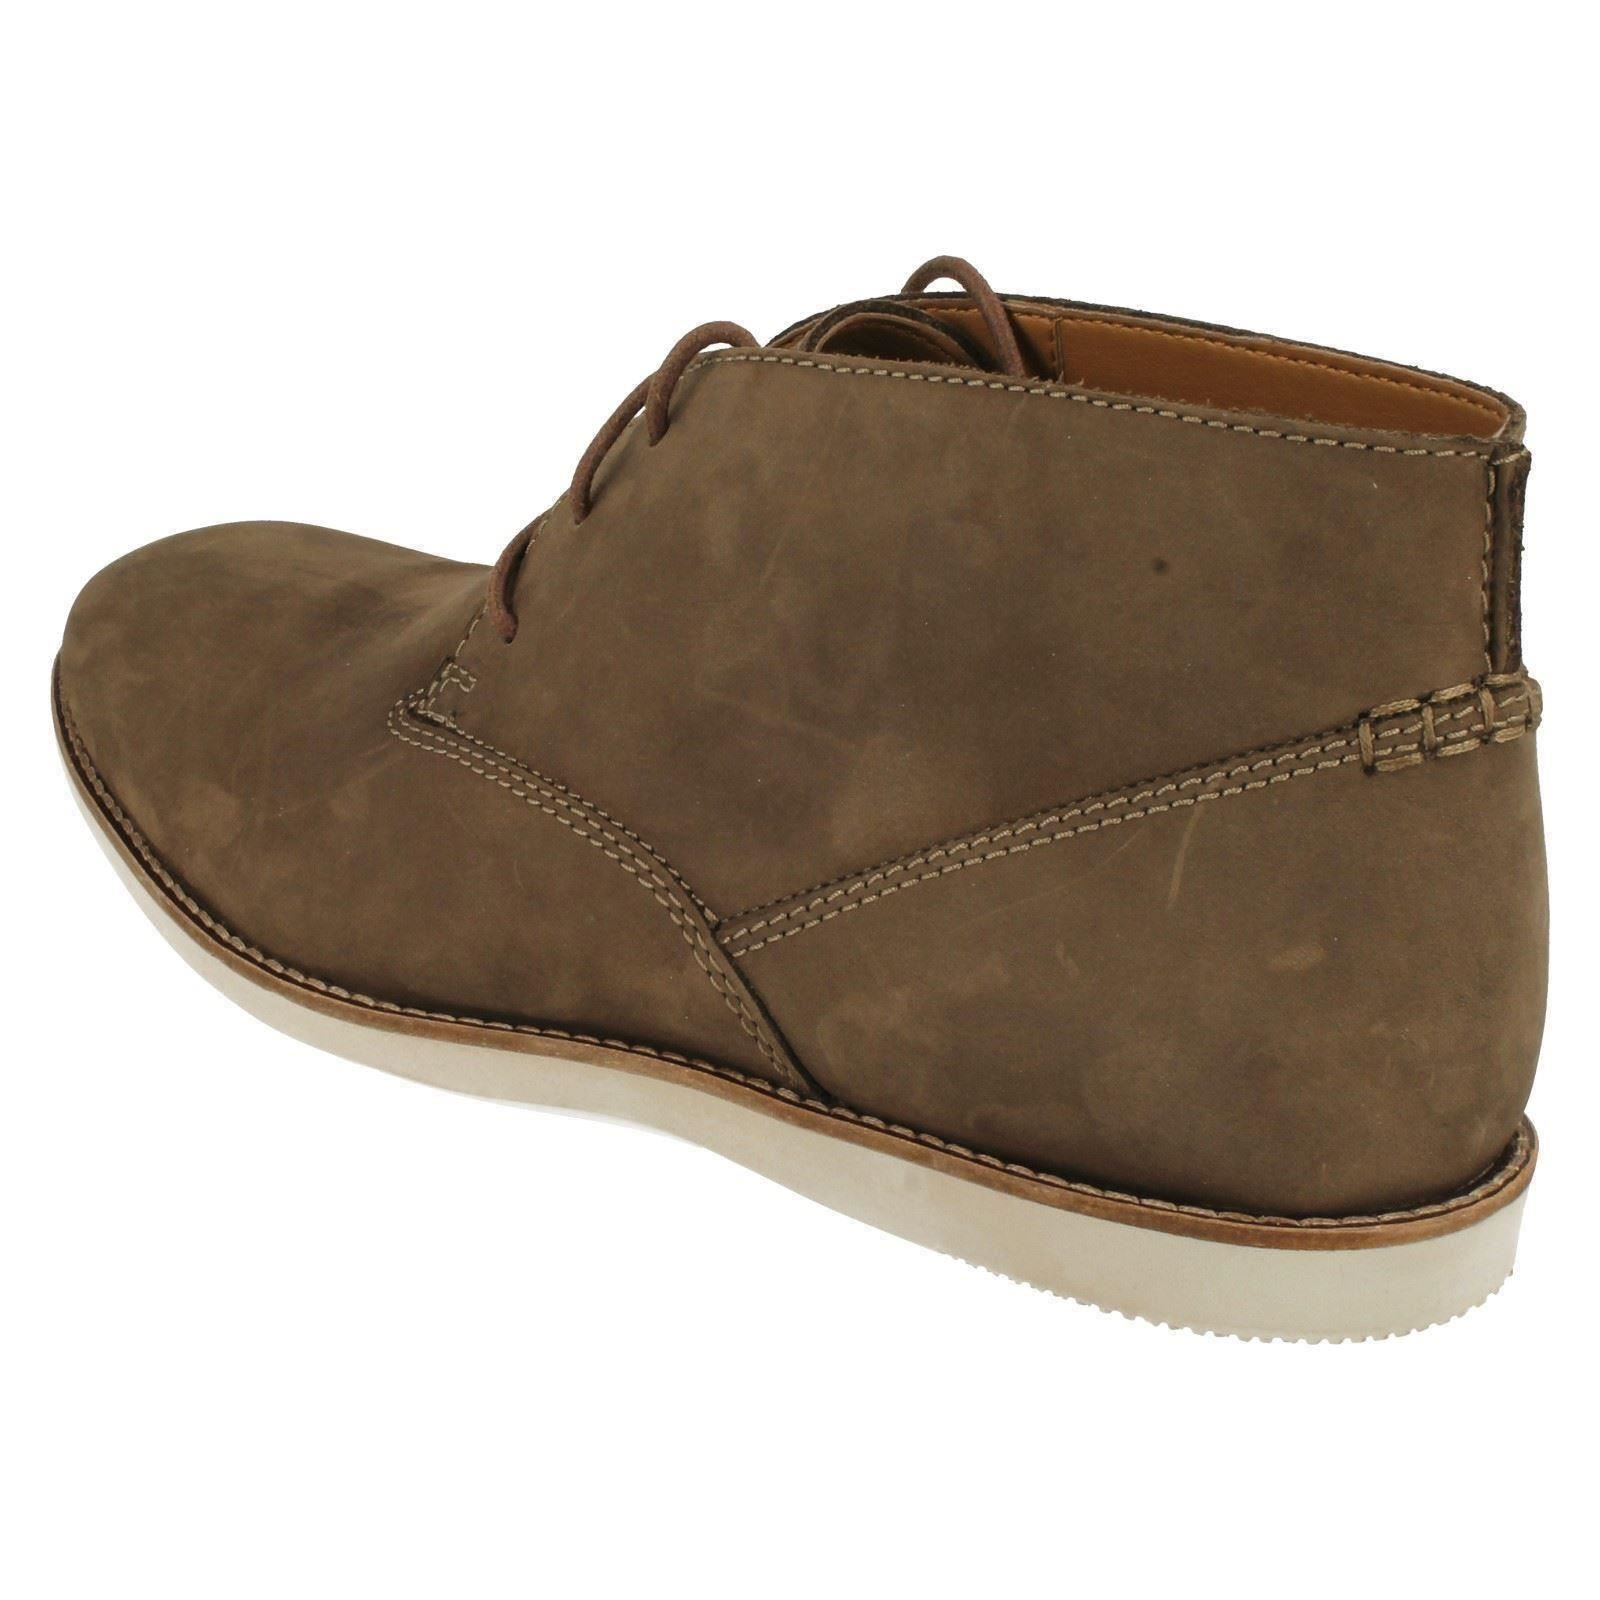 Details about Mens Clarks Ankle Boots Franson Top